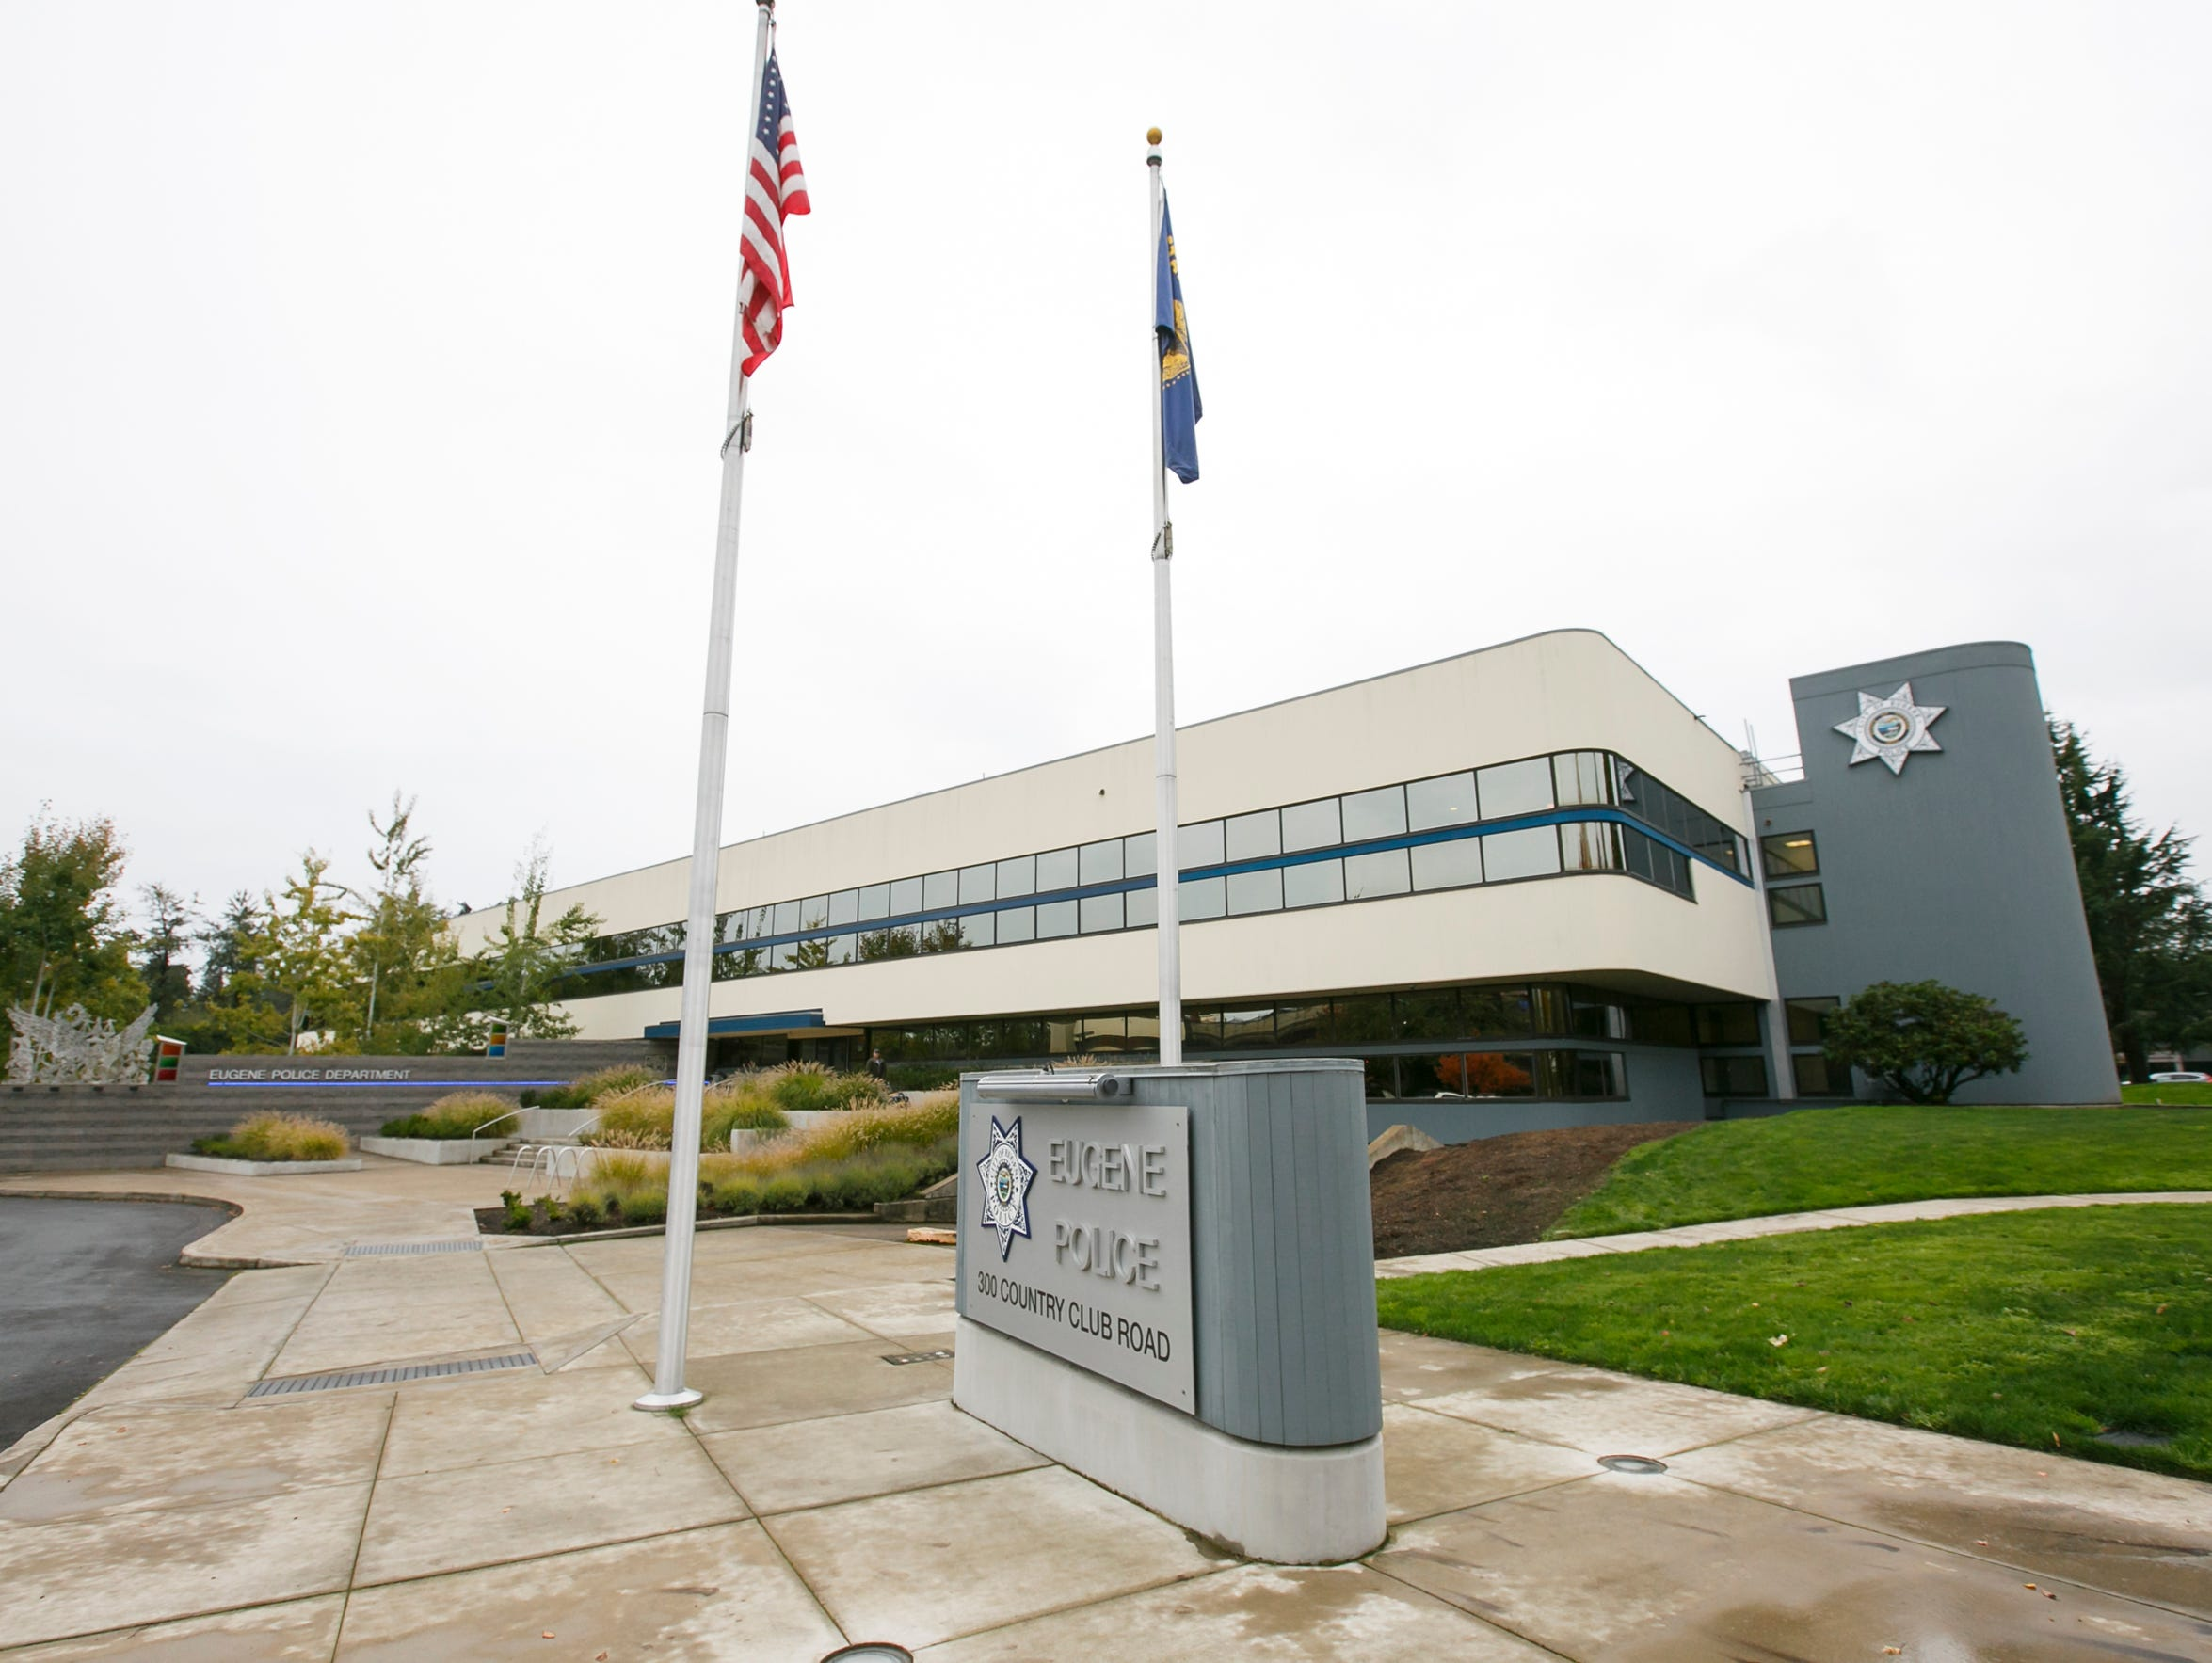 The Eugene Police Department's current building was